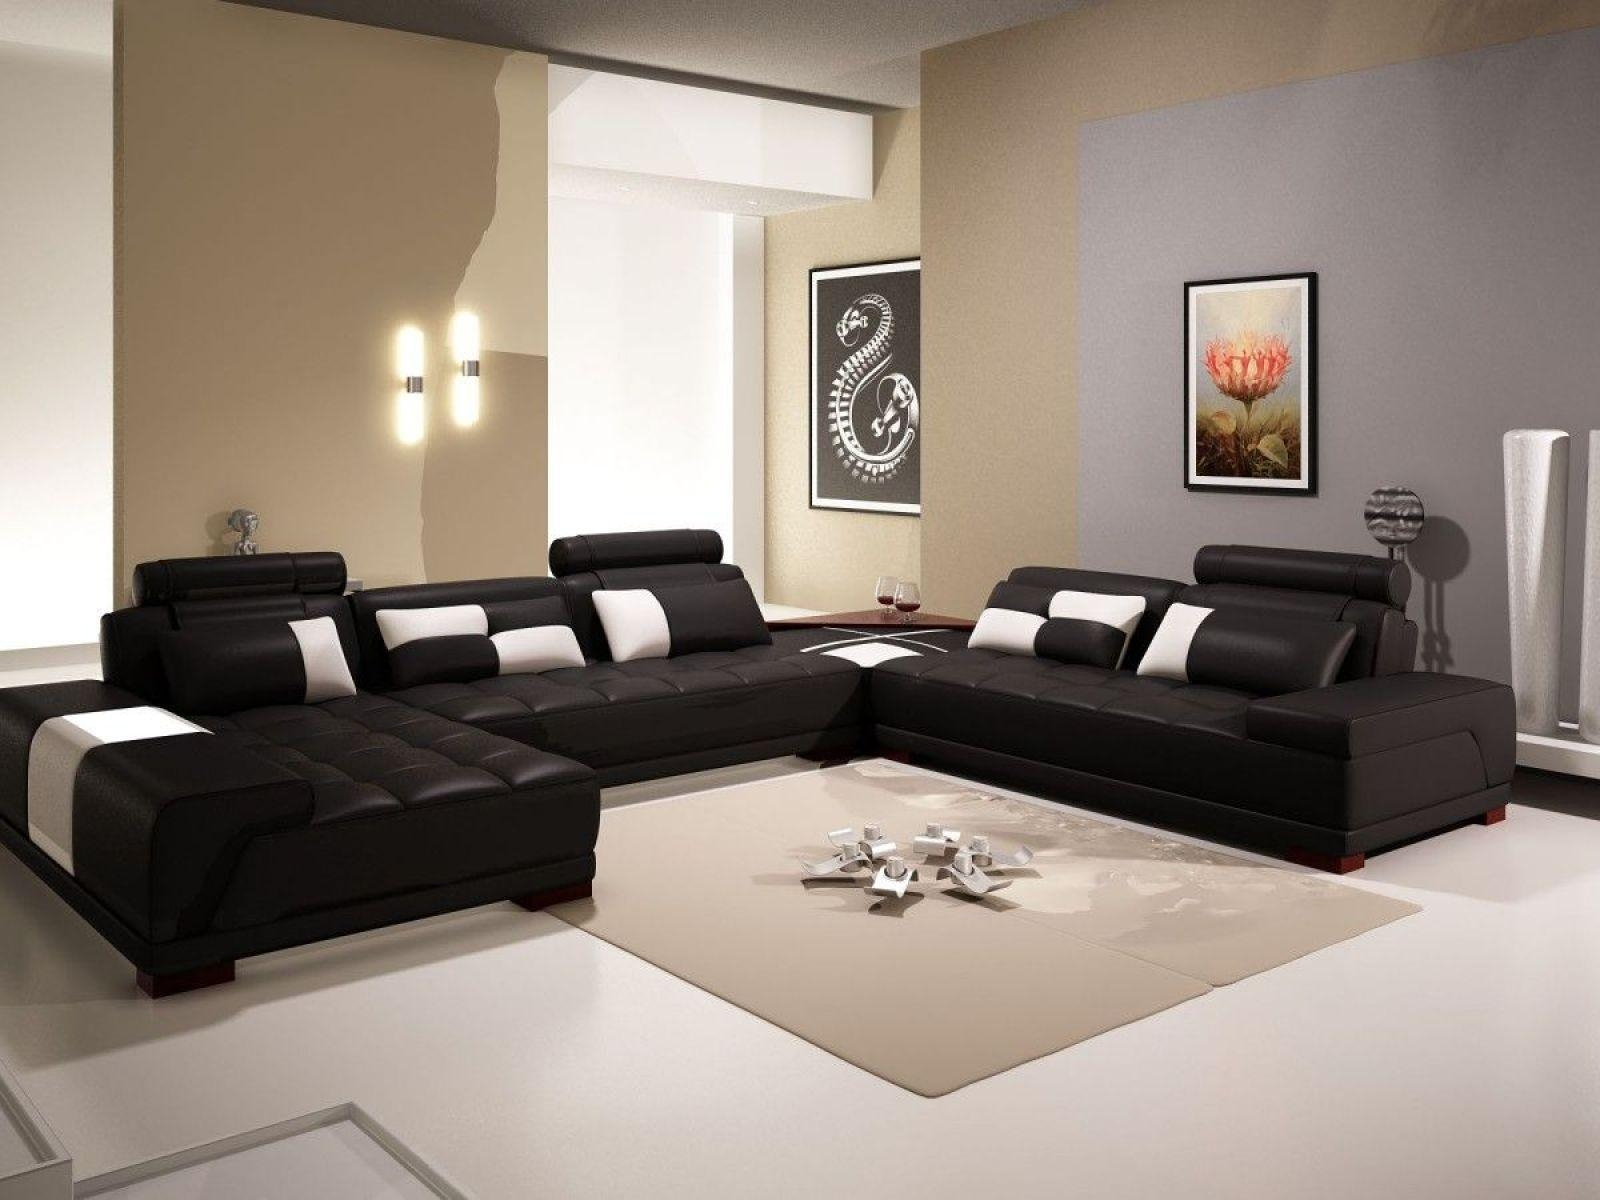 ▻ Sofa : 7 Wonderful Black Living Room Furniture Sets Black Intended For White And Black Sofas (View 17 of 21)